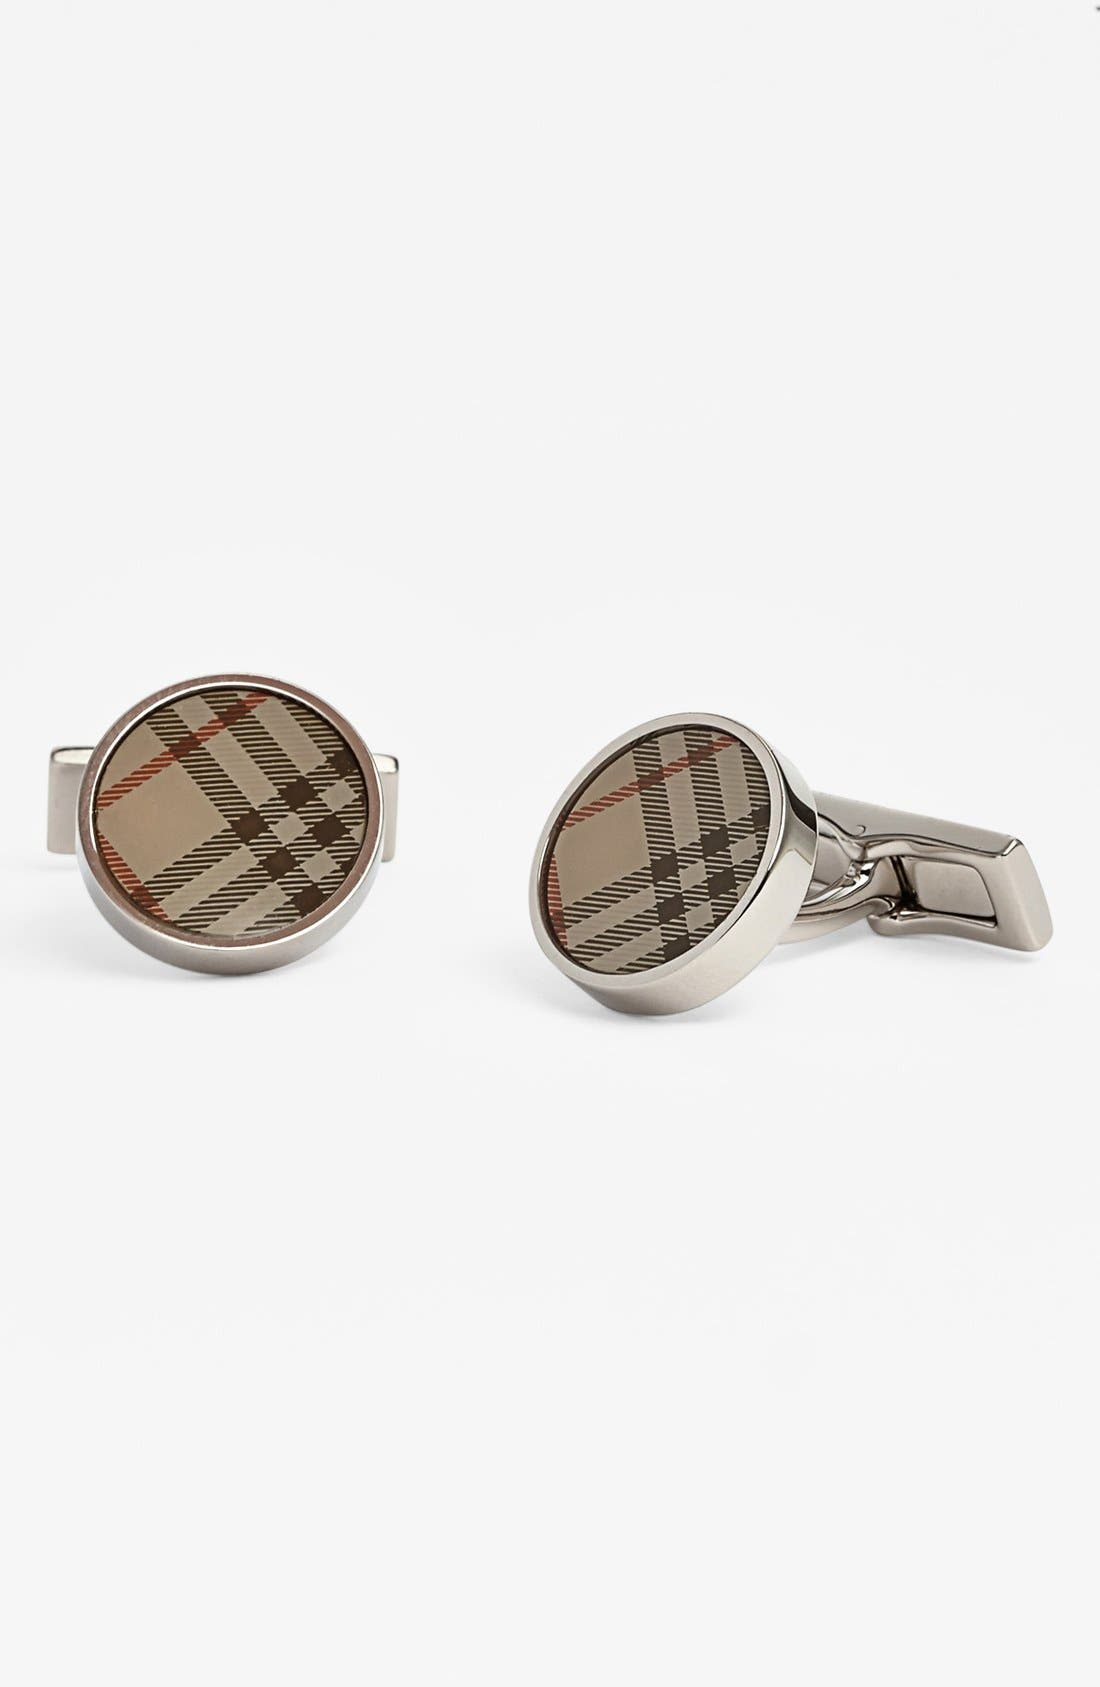 Alternate Image 1 Selected - Burberry Round Cuff Links